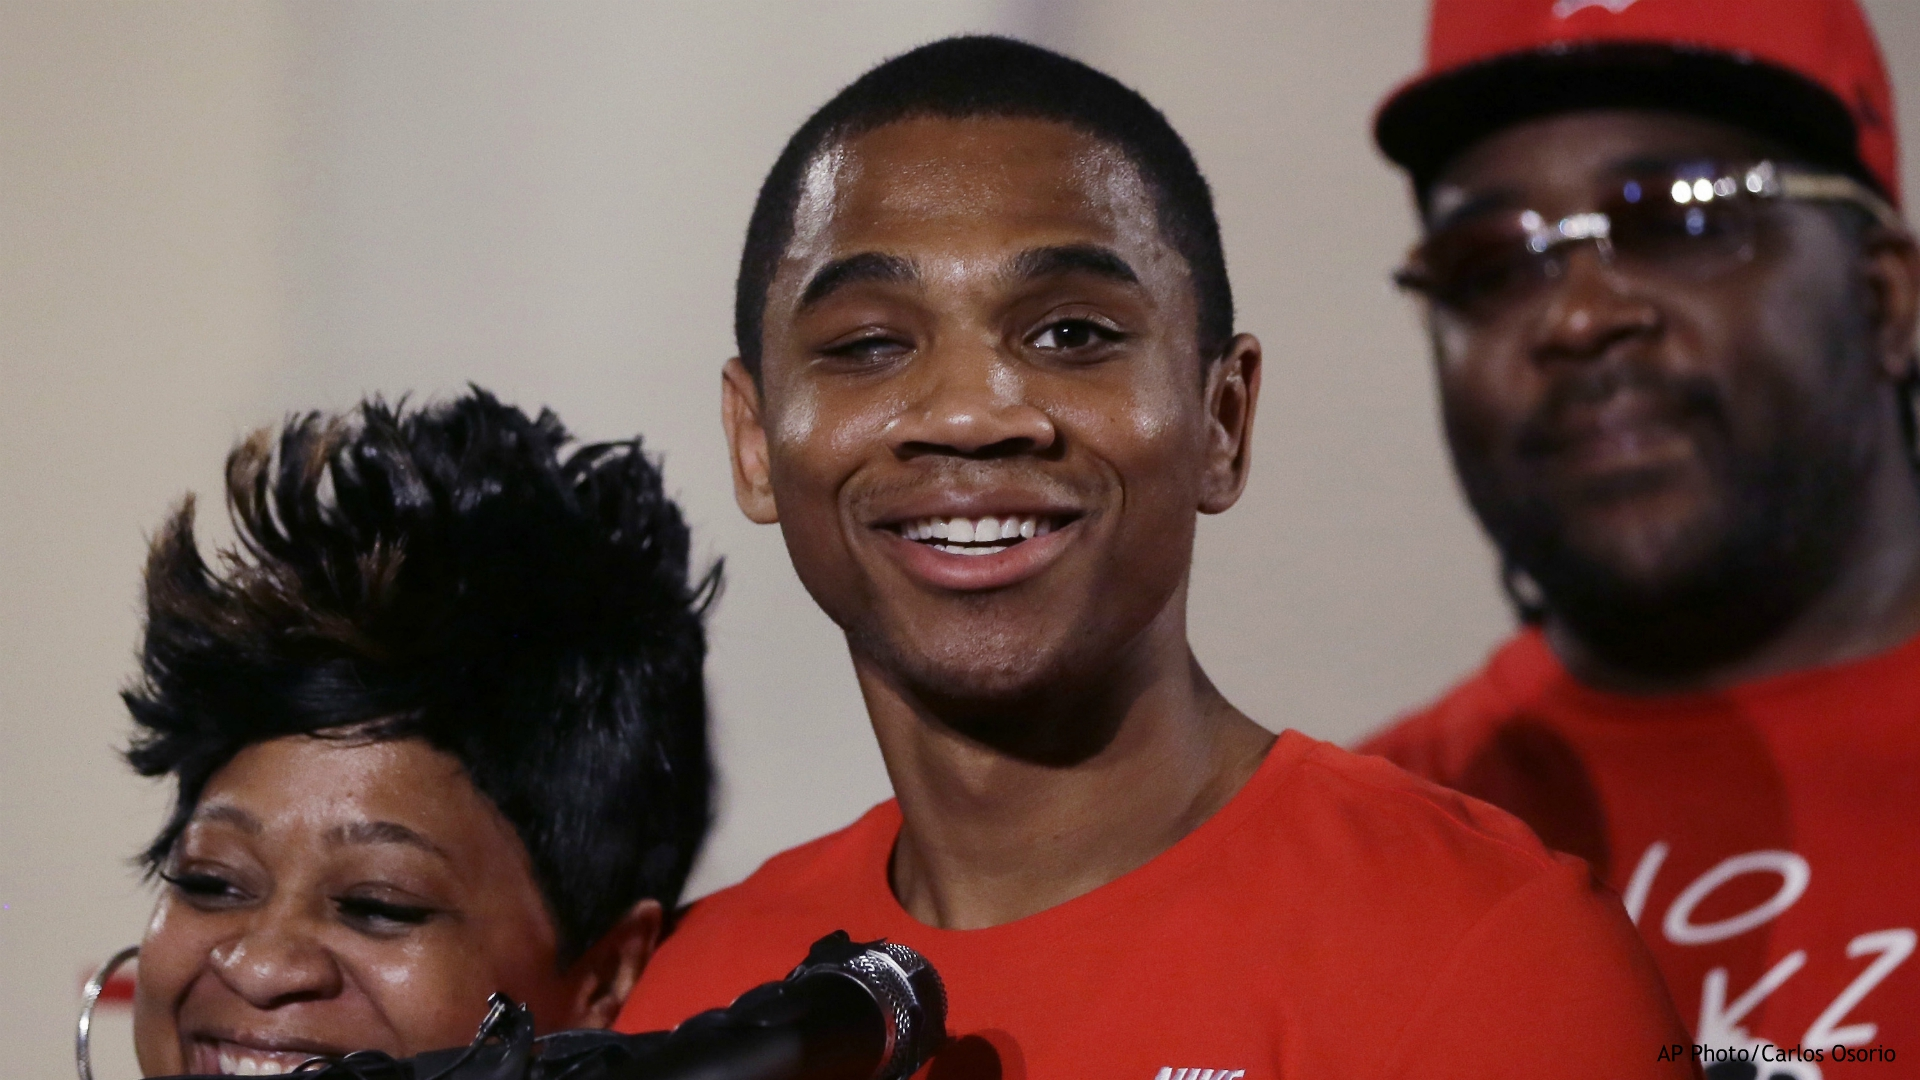 In this June 9, 2016, file photo, Davontae Sanford stands with his mother, Taminko Sanford, and addresses the media during a news conference in Detroit, a day after being released from prison. Michigan State Police said blood on the shoe of Davontae Sanford who was convicted but subsequently cleared of four murders reveals DNA from one of the victims. The disclosure was made in a recent filing in Detroit federal court where Davontae Sanford is suing Detroit police over the 2007 investigation. (AP Photo/Carlos Osorio, File)